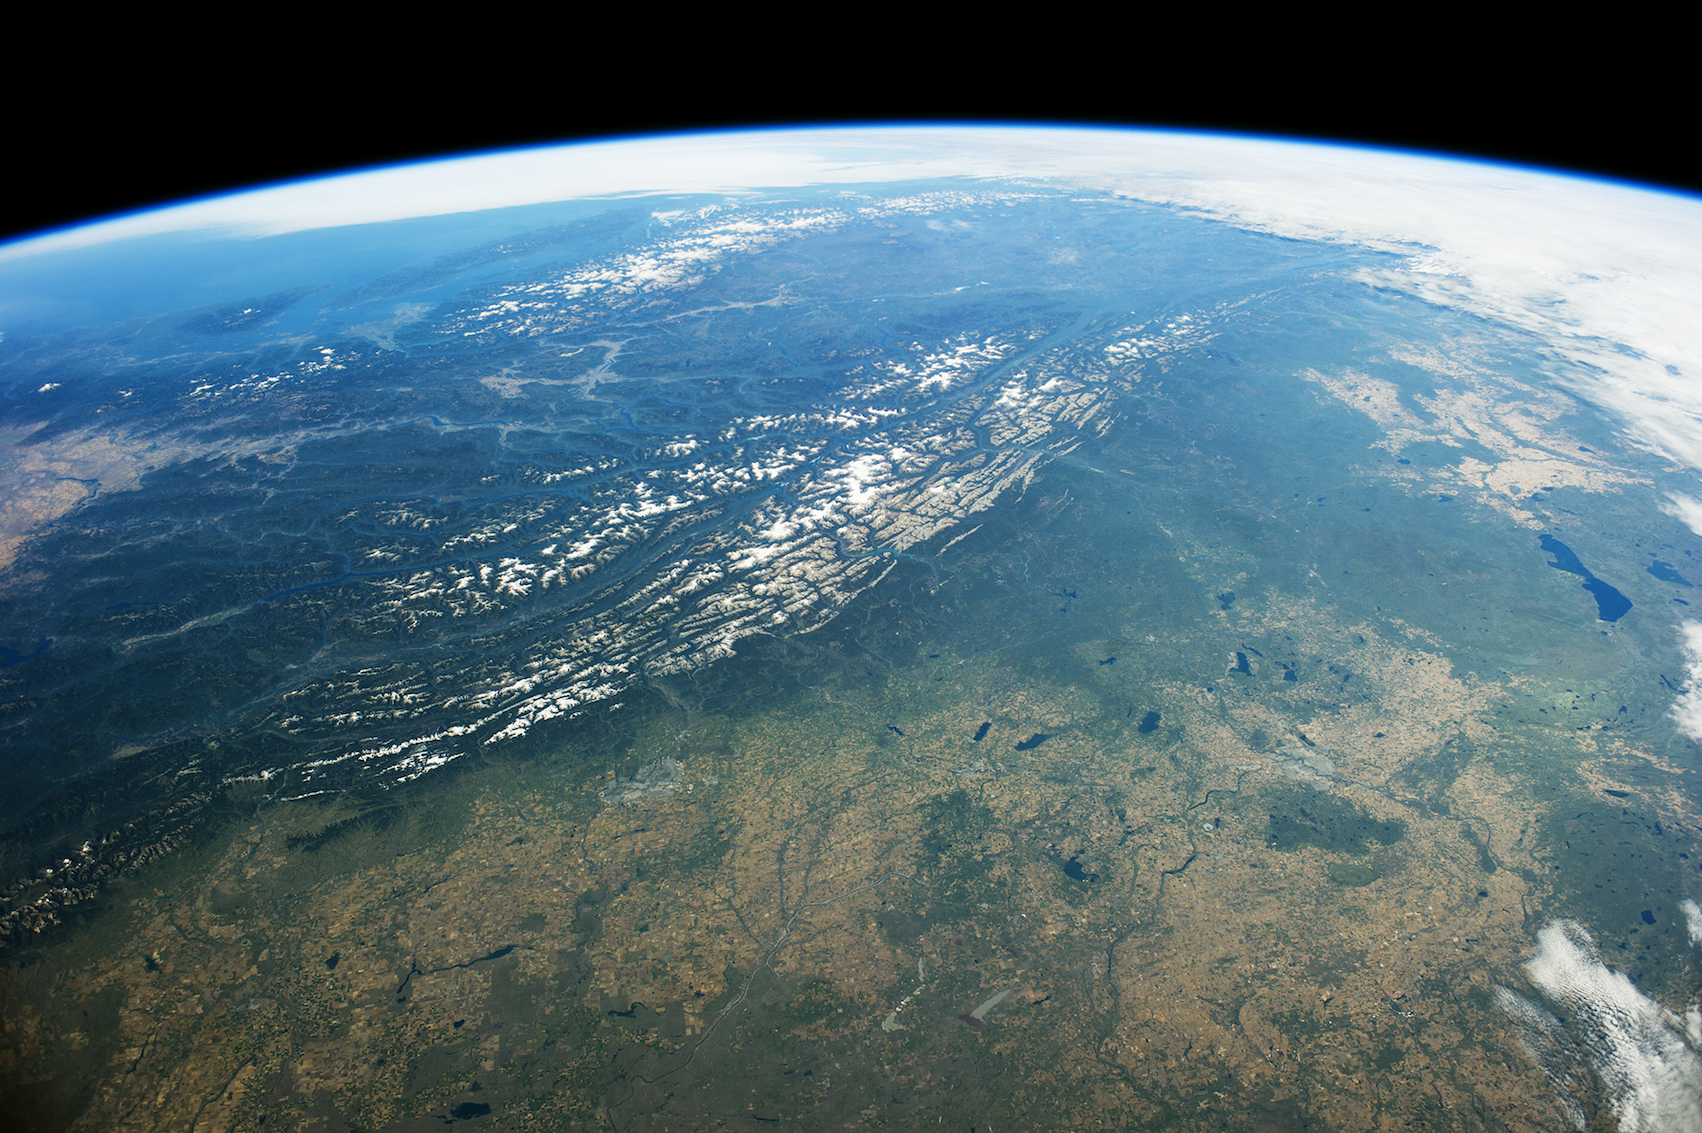 Today's Image of the Day comes thanks to the NASA Earth Observatory and features a look at the Rocky Mountain Trench from the International Space Station.